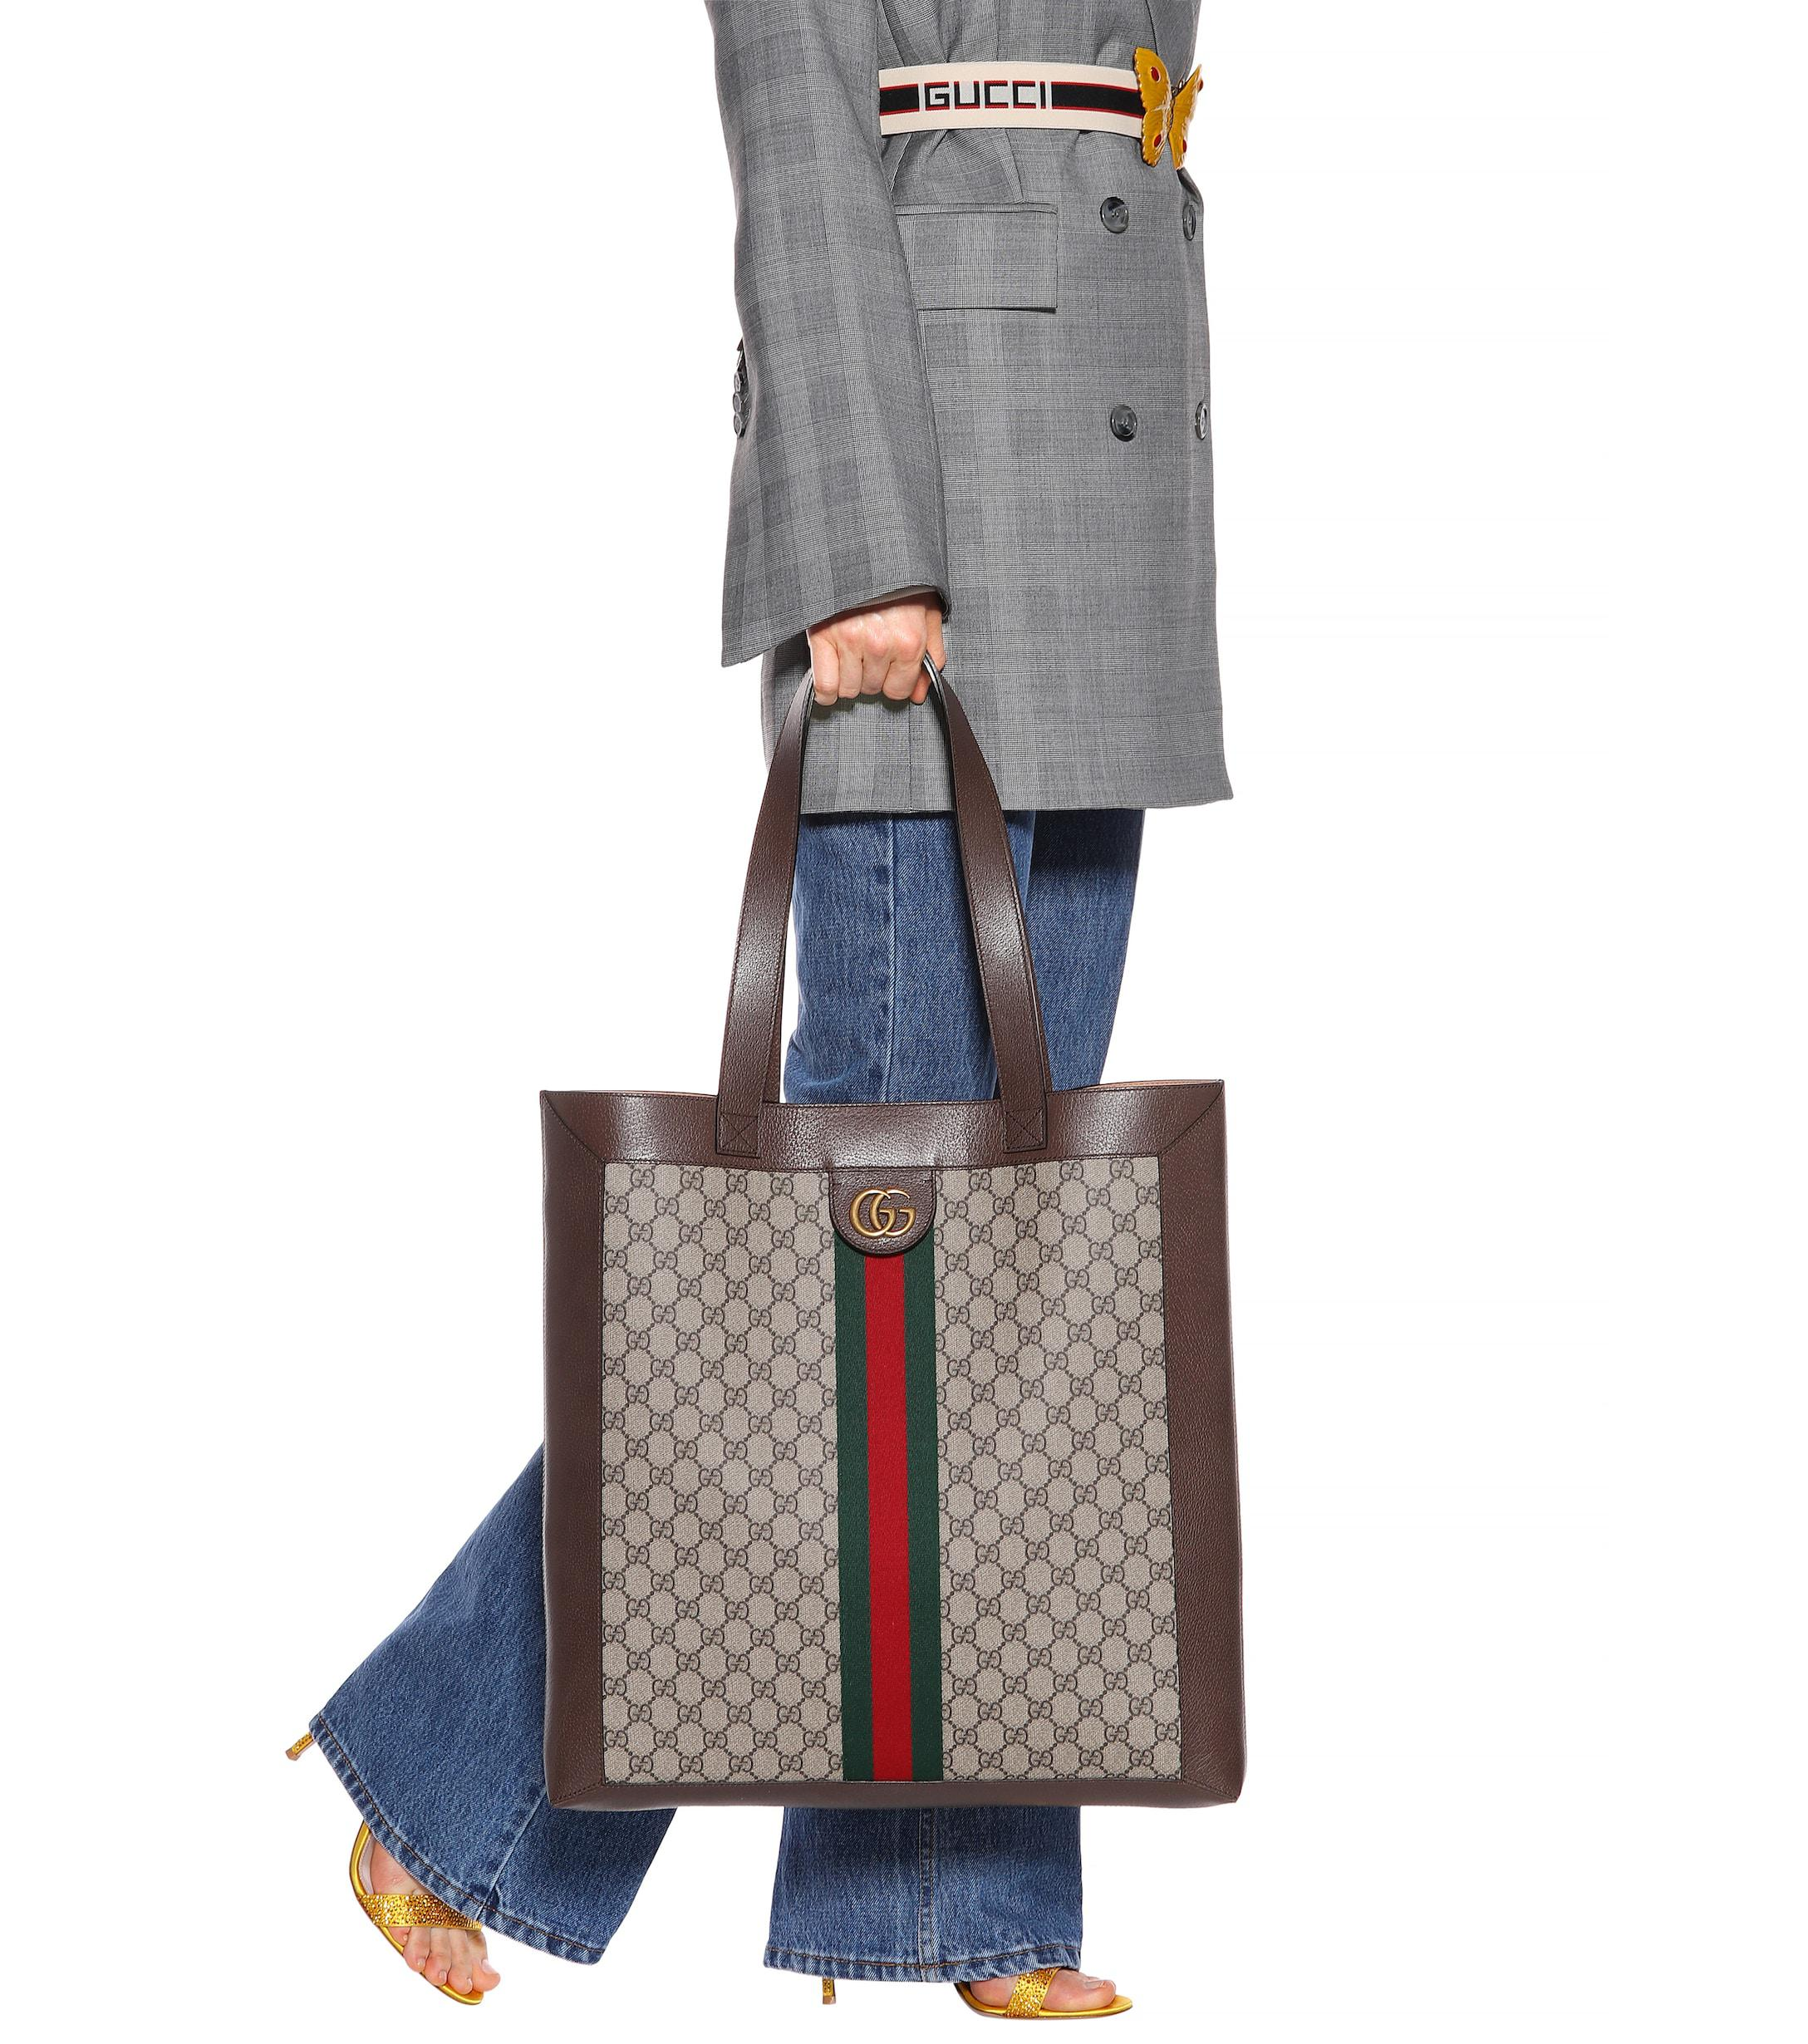 ee1c931411df Lyst - Gucci Ophidia GG Supreme Large Tote